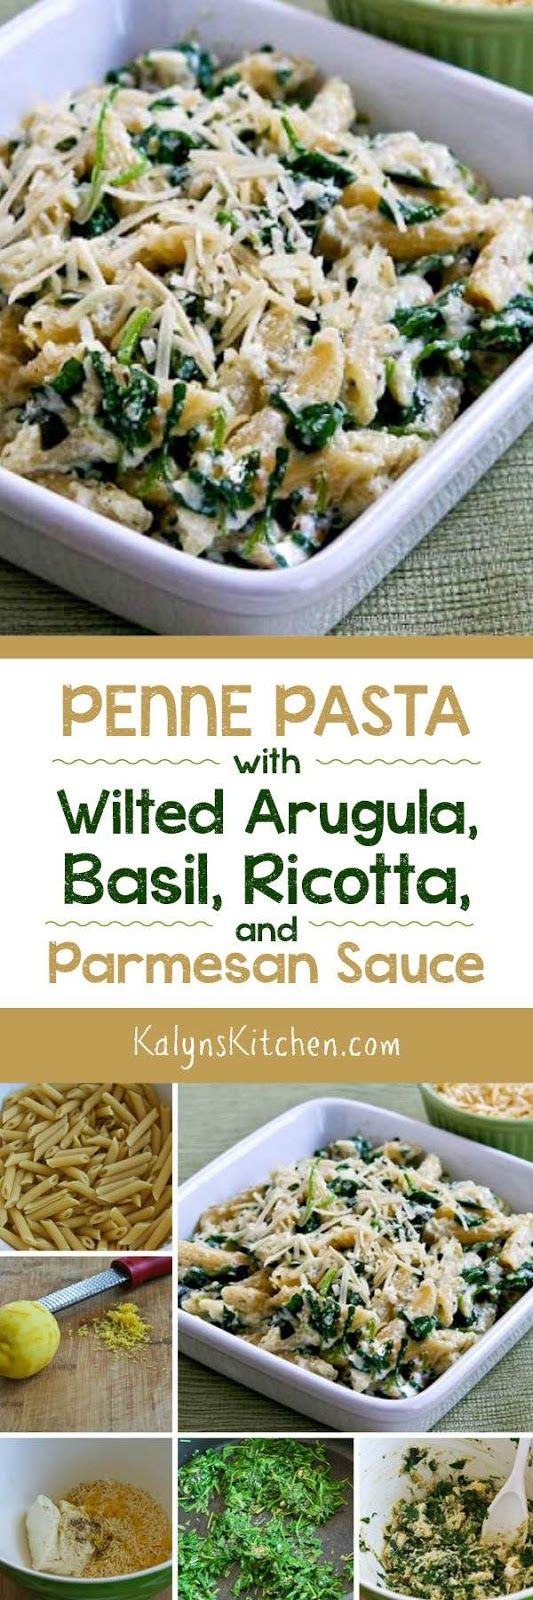 Arugula fans will swoon over Penne Pasta with Wilted Arugula, Basil, Ricotta…